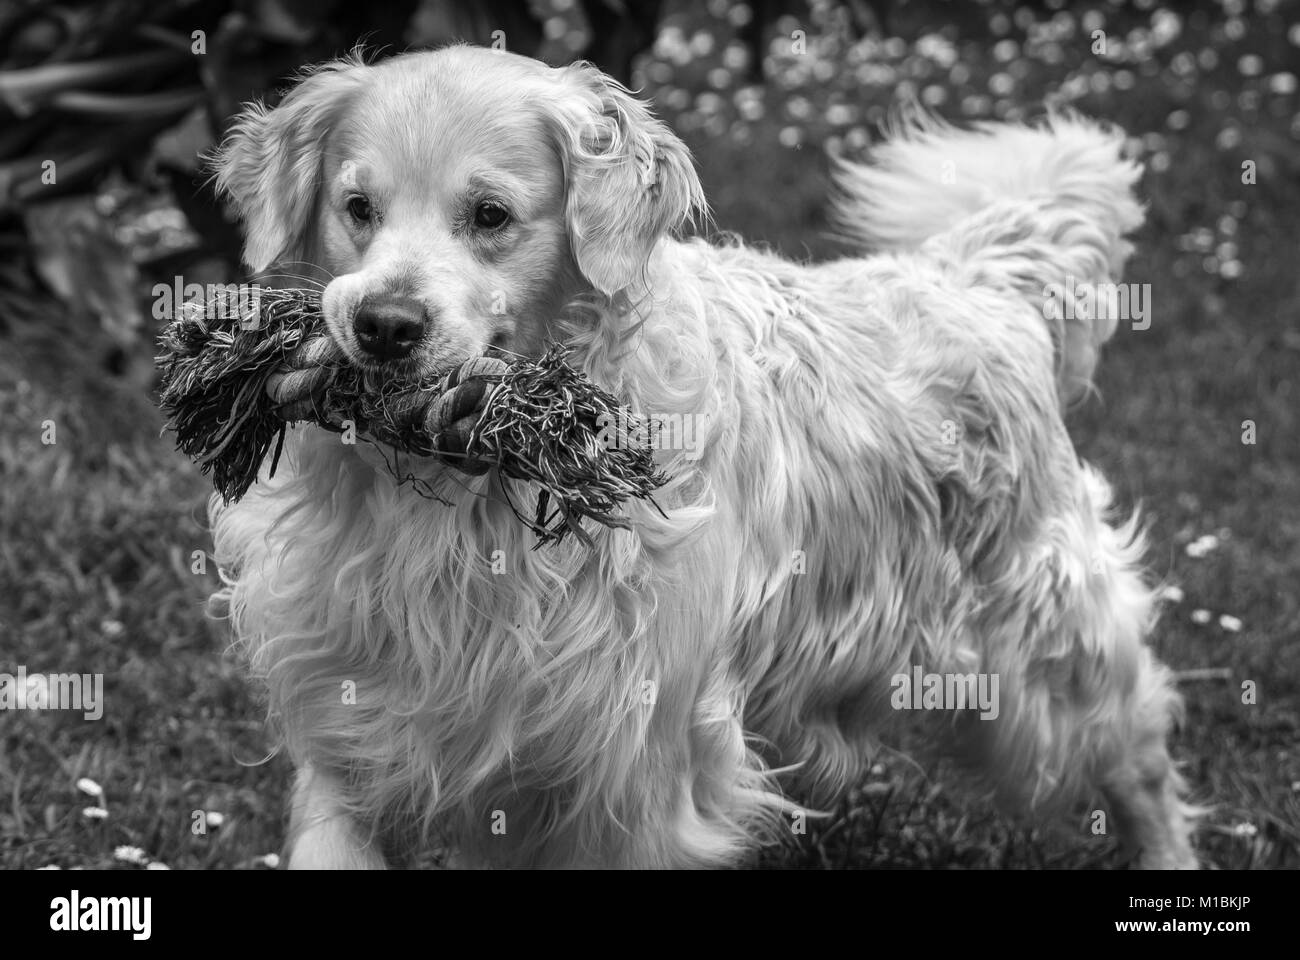 my dear and best friend, my golden retriever dog named Prince, with his favorite toy that never tires of biting Stock Photo